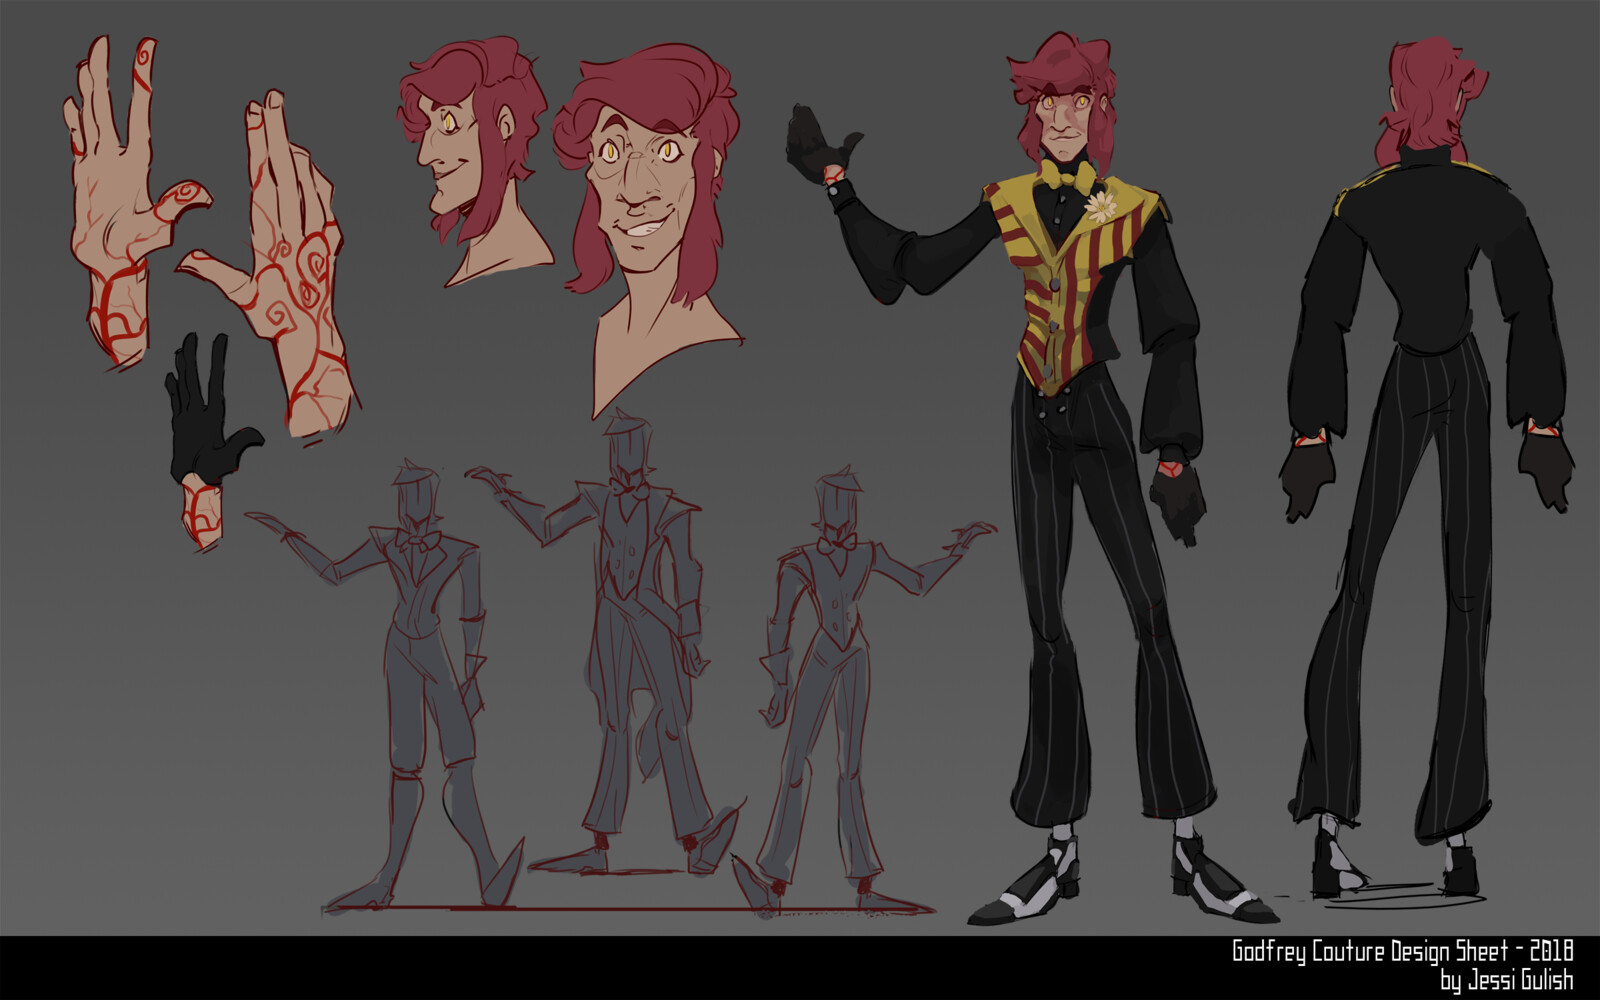 Godfrey Couture Character Design